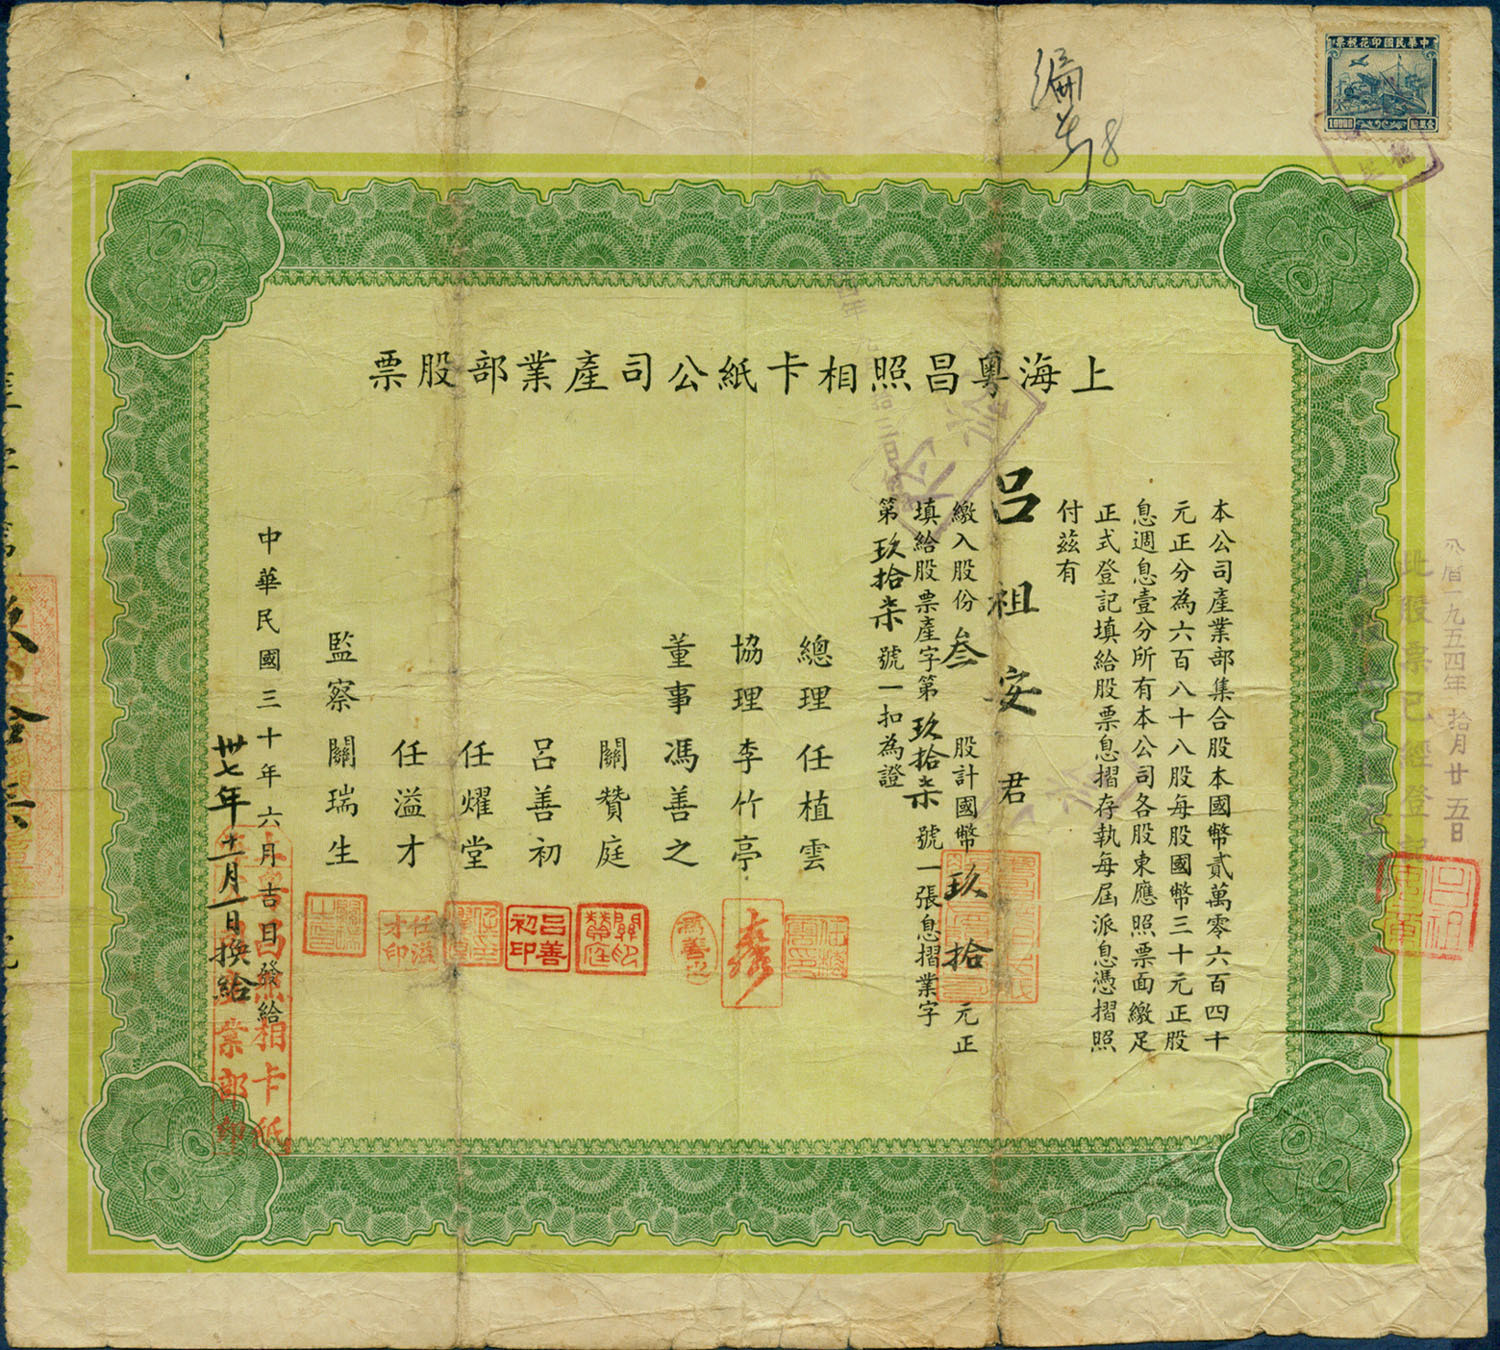 S1157 Shanghai Yue-Chang Photo-Card Co. Ltd, Share Certificate of 1941